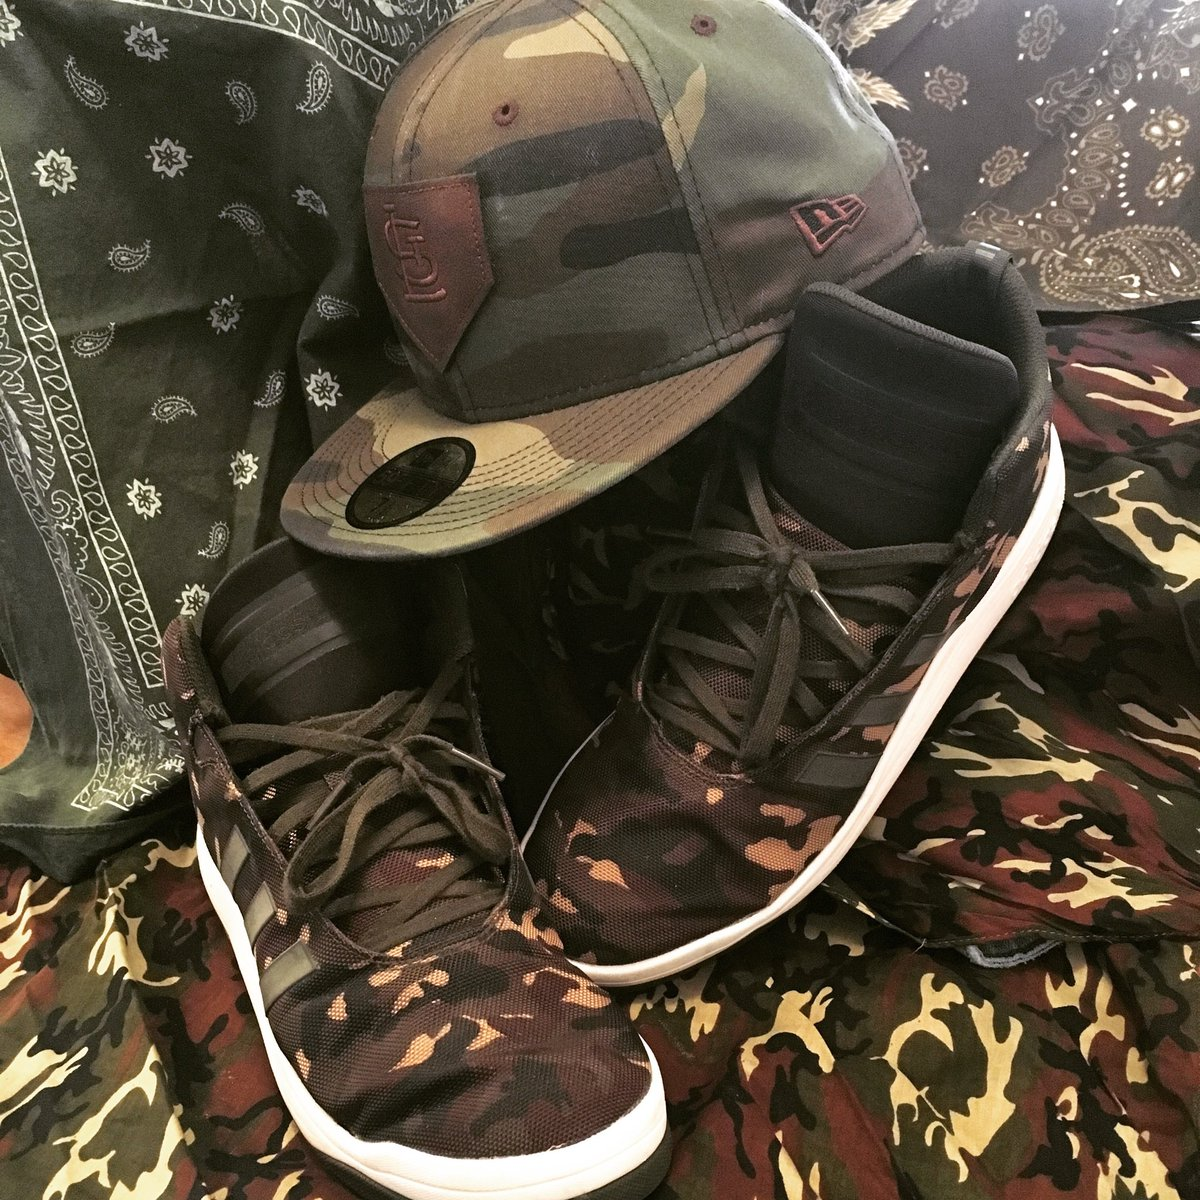 f0f171f7d26 Adidas Veritas Mid. I am THE #sneakersmatchmyhatjedi. love #dopesneakers  that match #flatbillfittedhats #sneakerhead #shoegame #fittedfamily #newera  ...